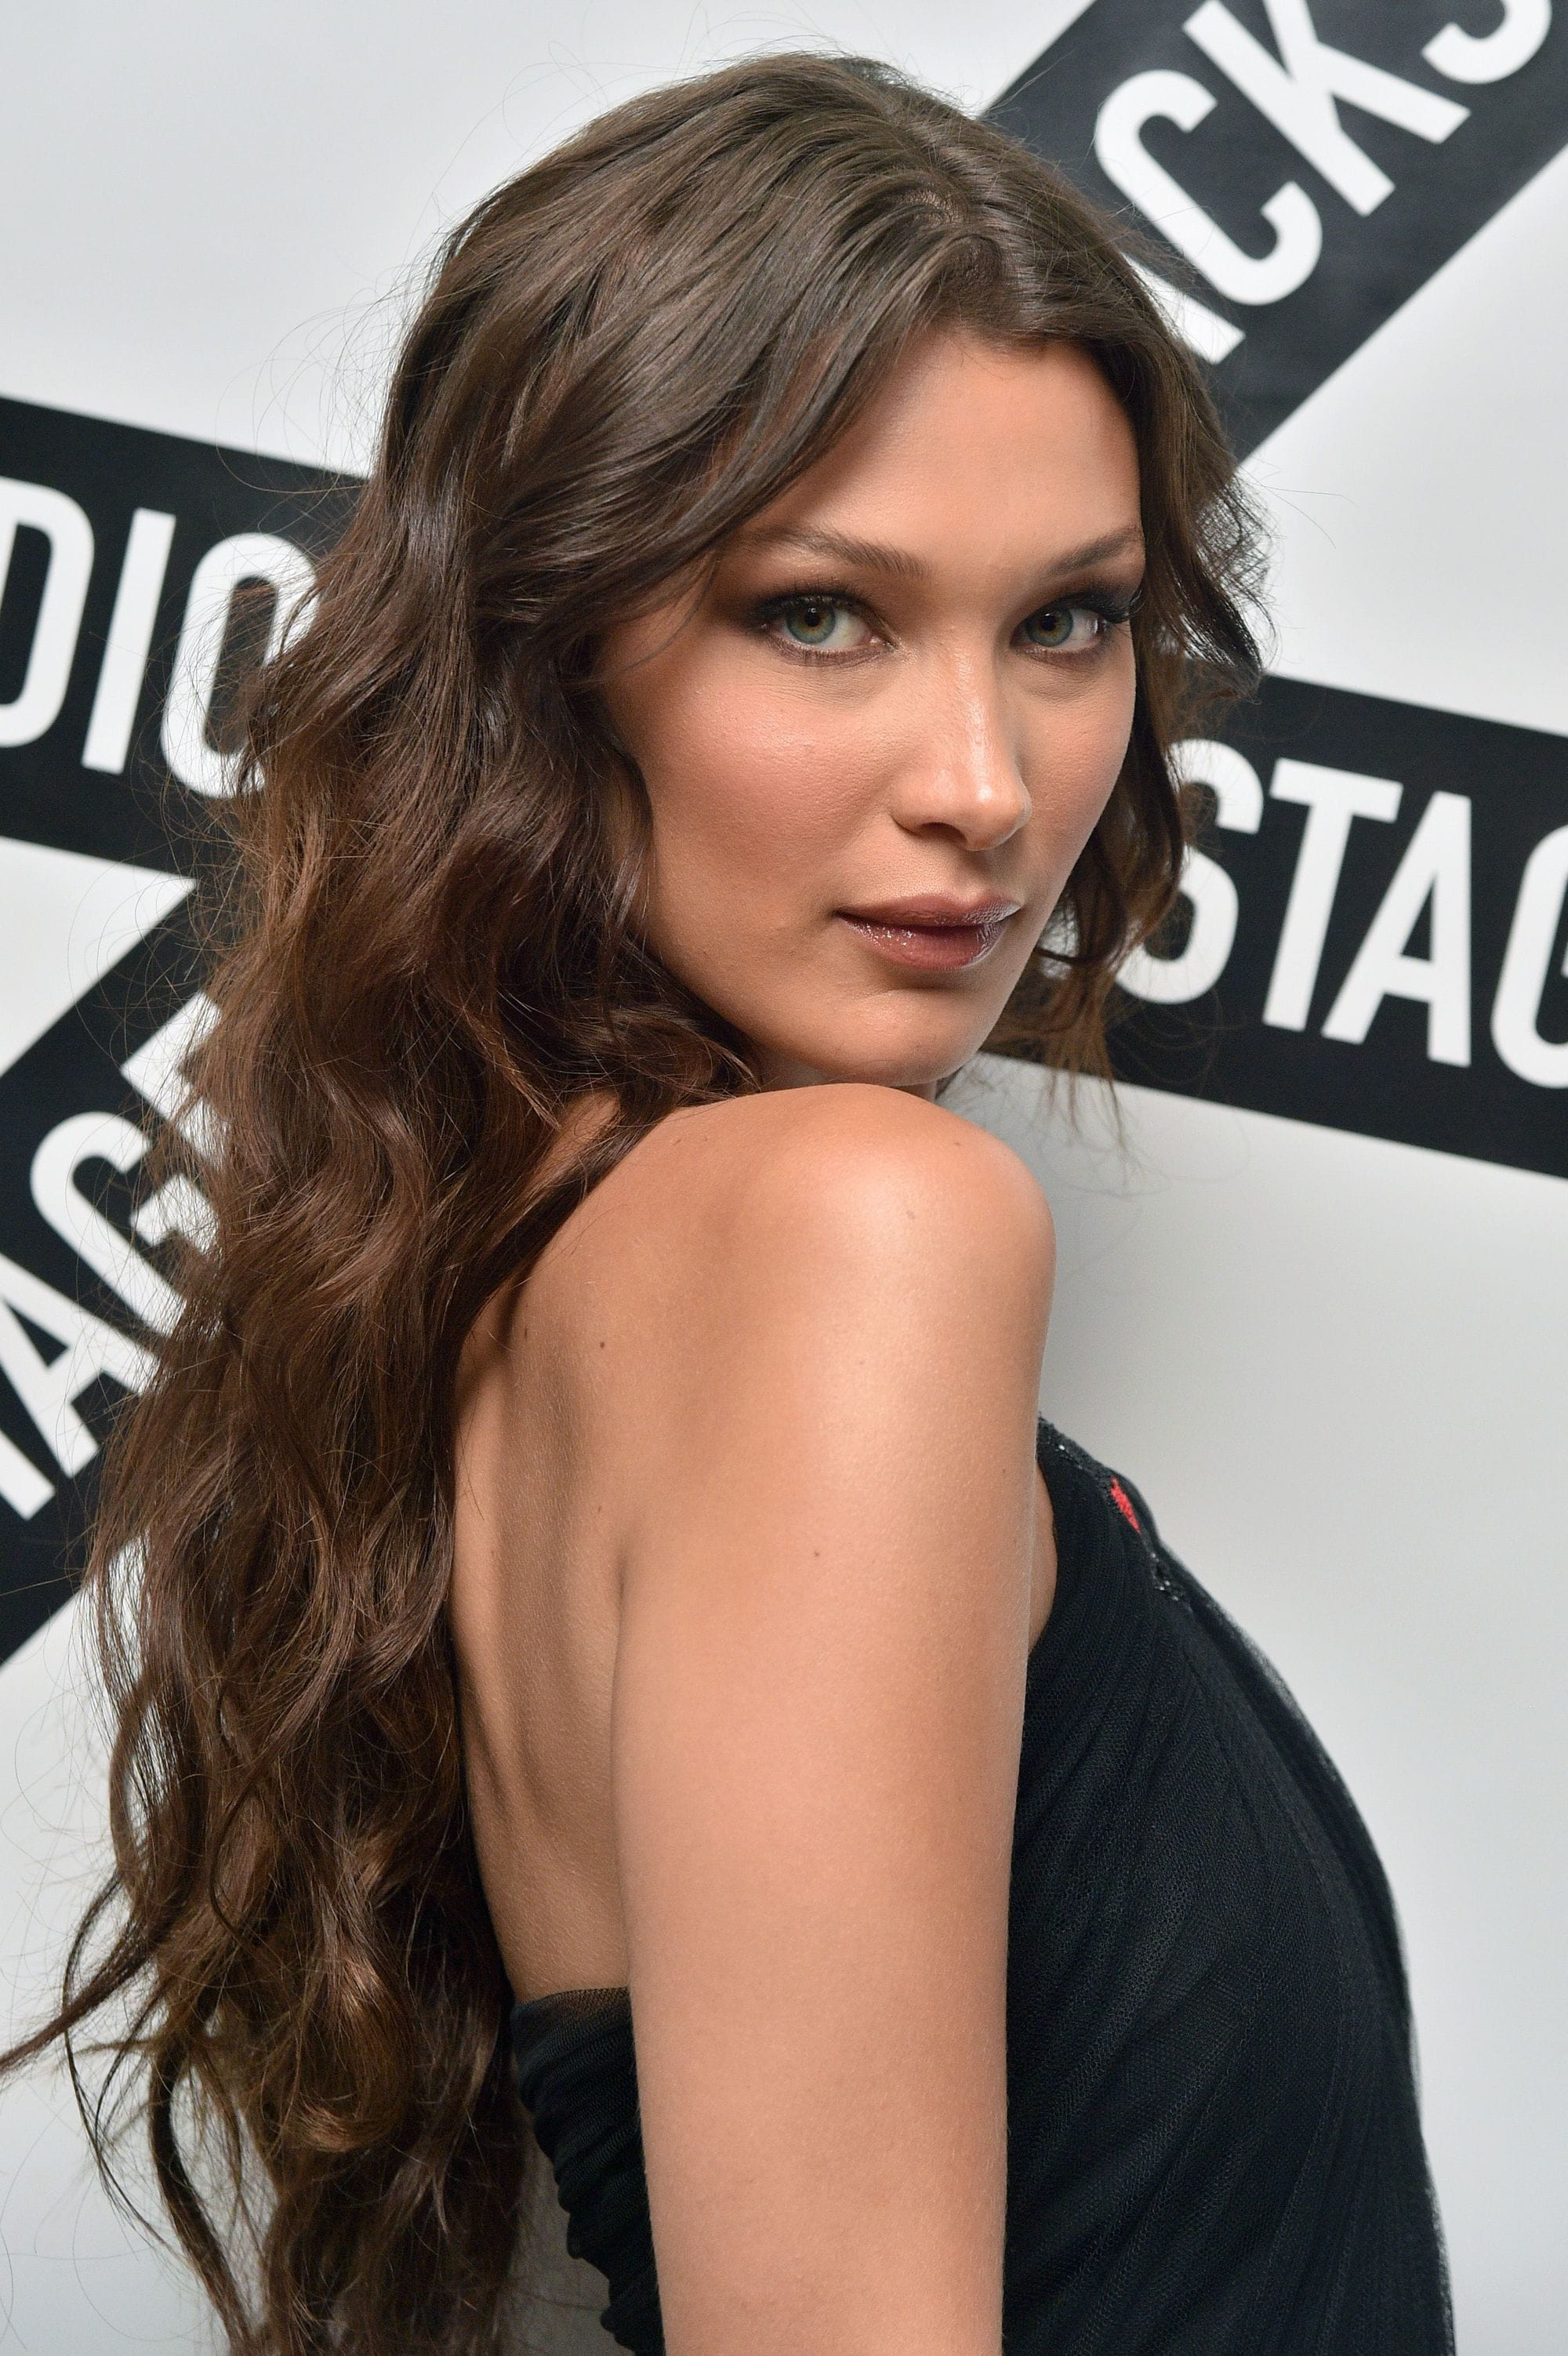 Long curly hair: Close up shot of model Bella Hadid with long curly chocolate brown hair, wearing black and posing at a Dior show